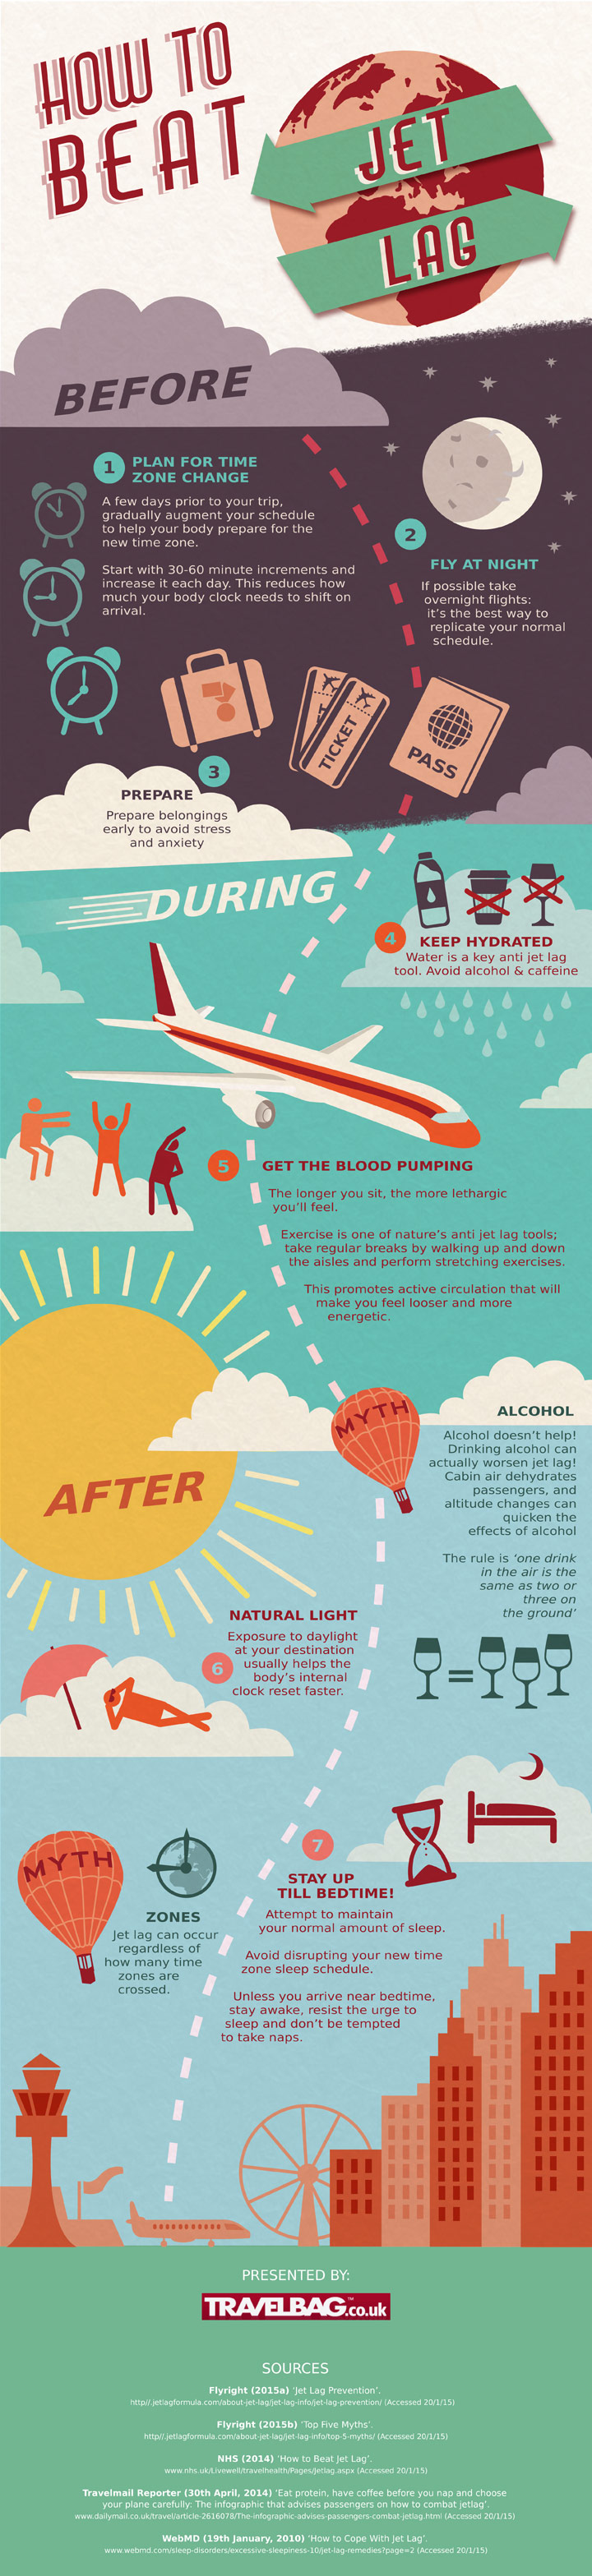 Defeating Jet Lag While International Travel - Infographic